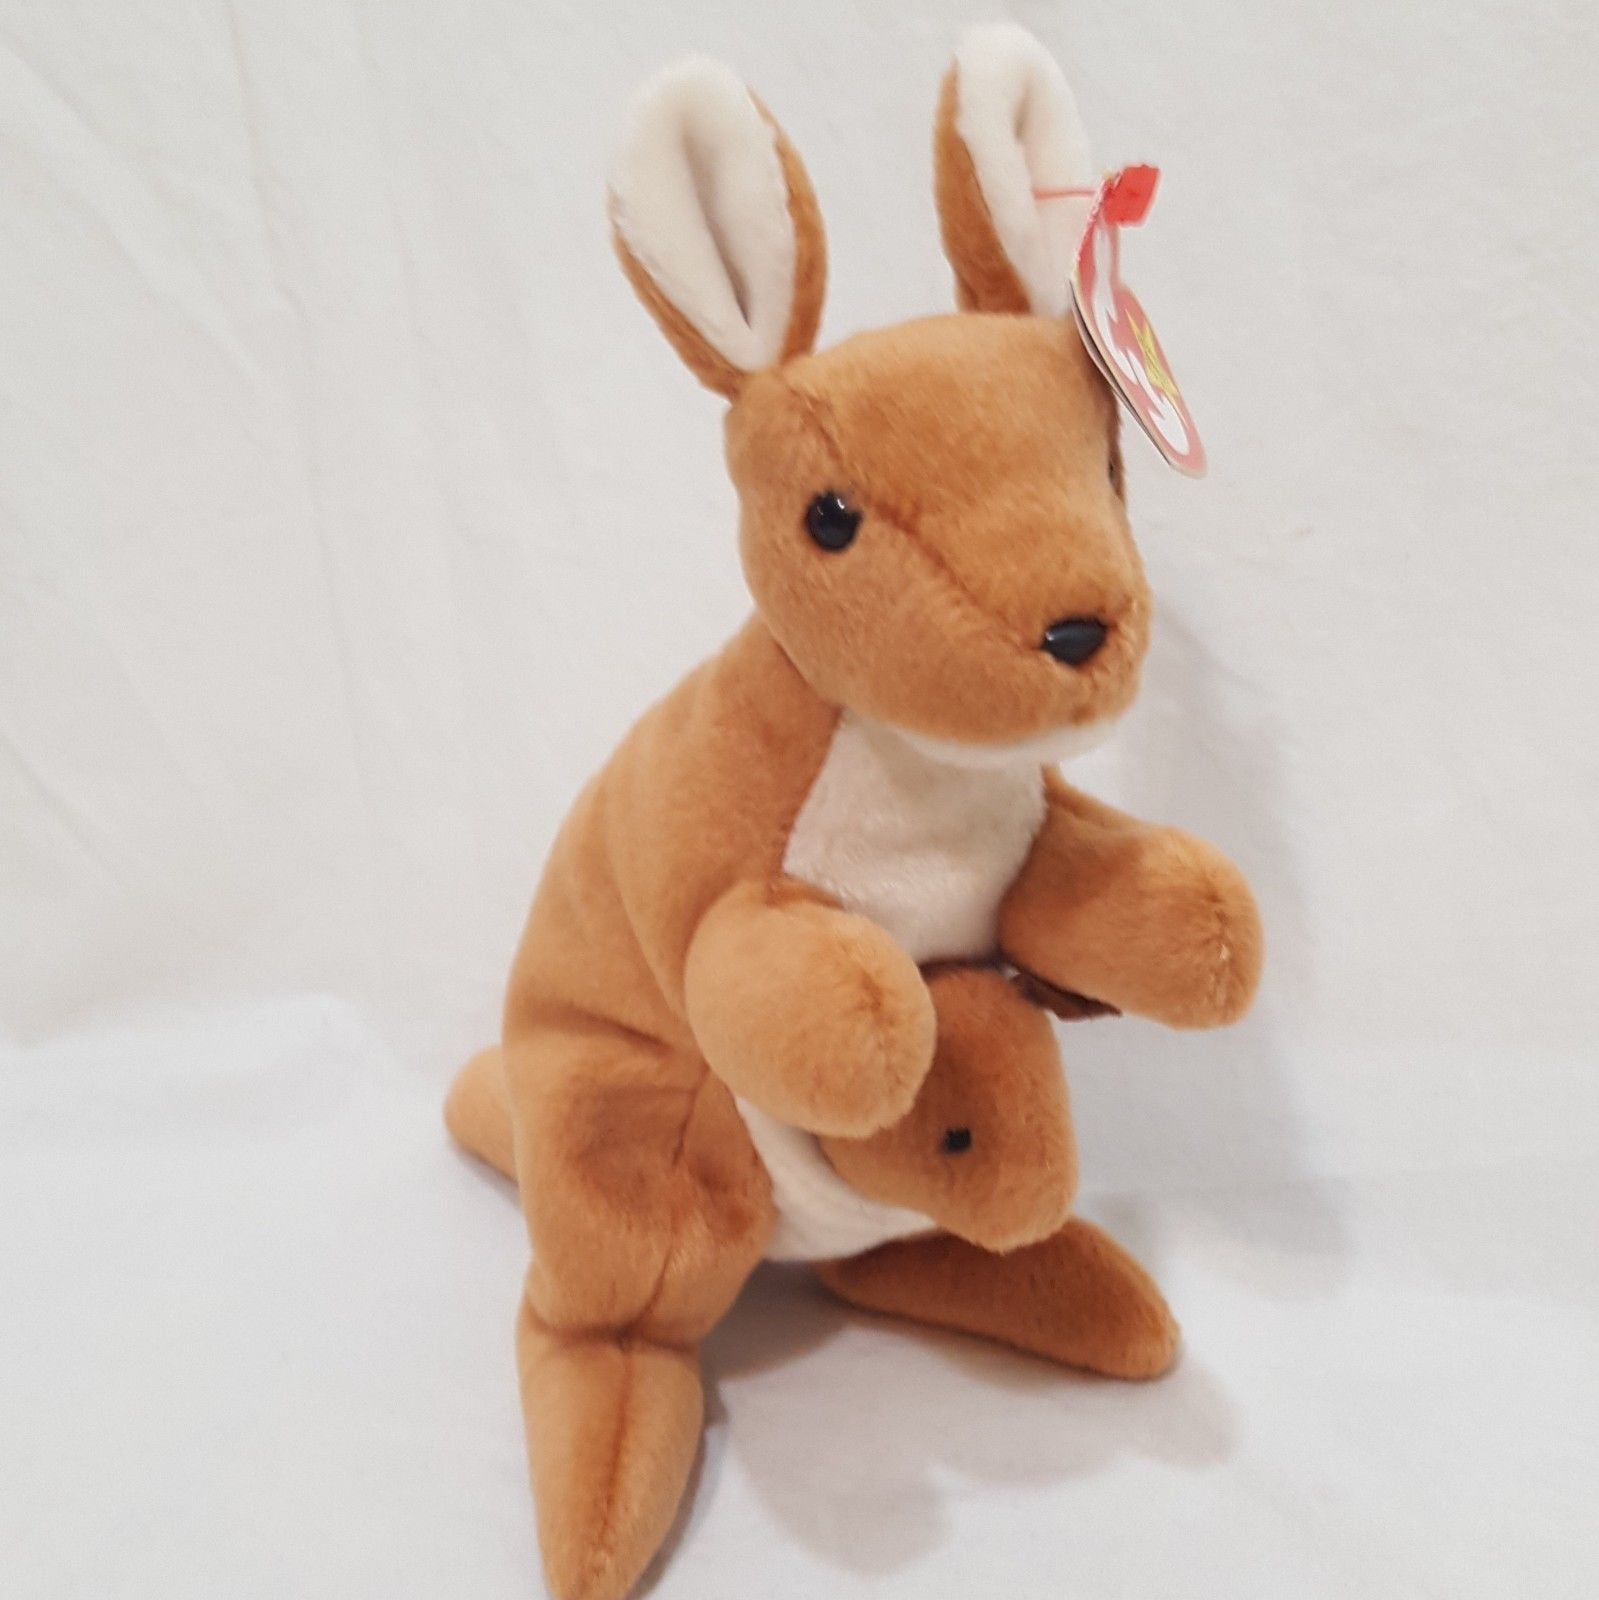 c2496a56dcd Pouch Kangaroo Joey 1996 Ty Beanie Babies and 16 similar items. S l1600